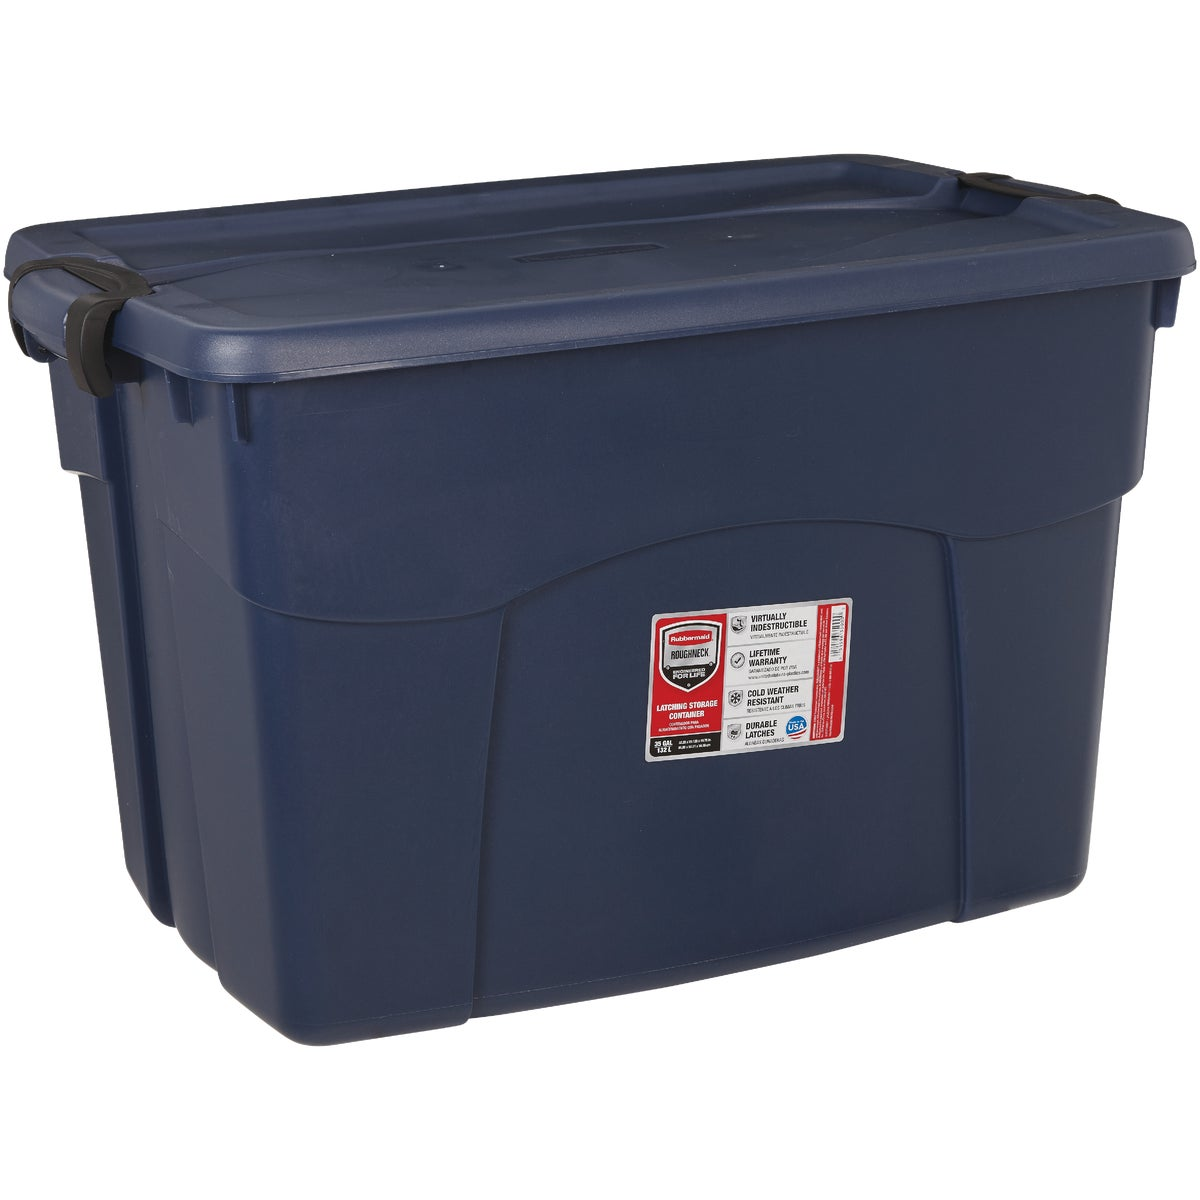 35GAL RYL BL TOTE - FG216200DIM by Rubbermaid Home